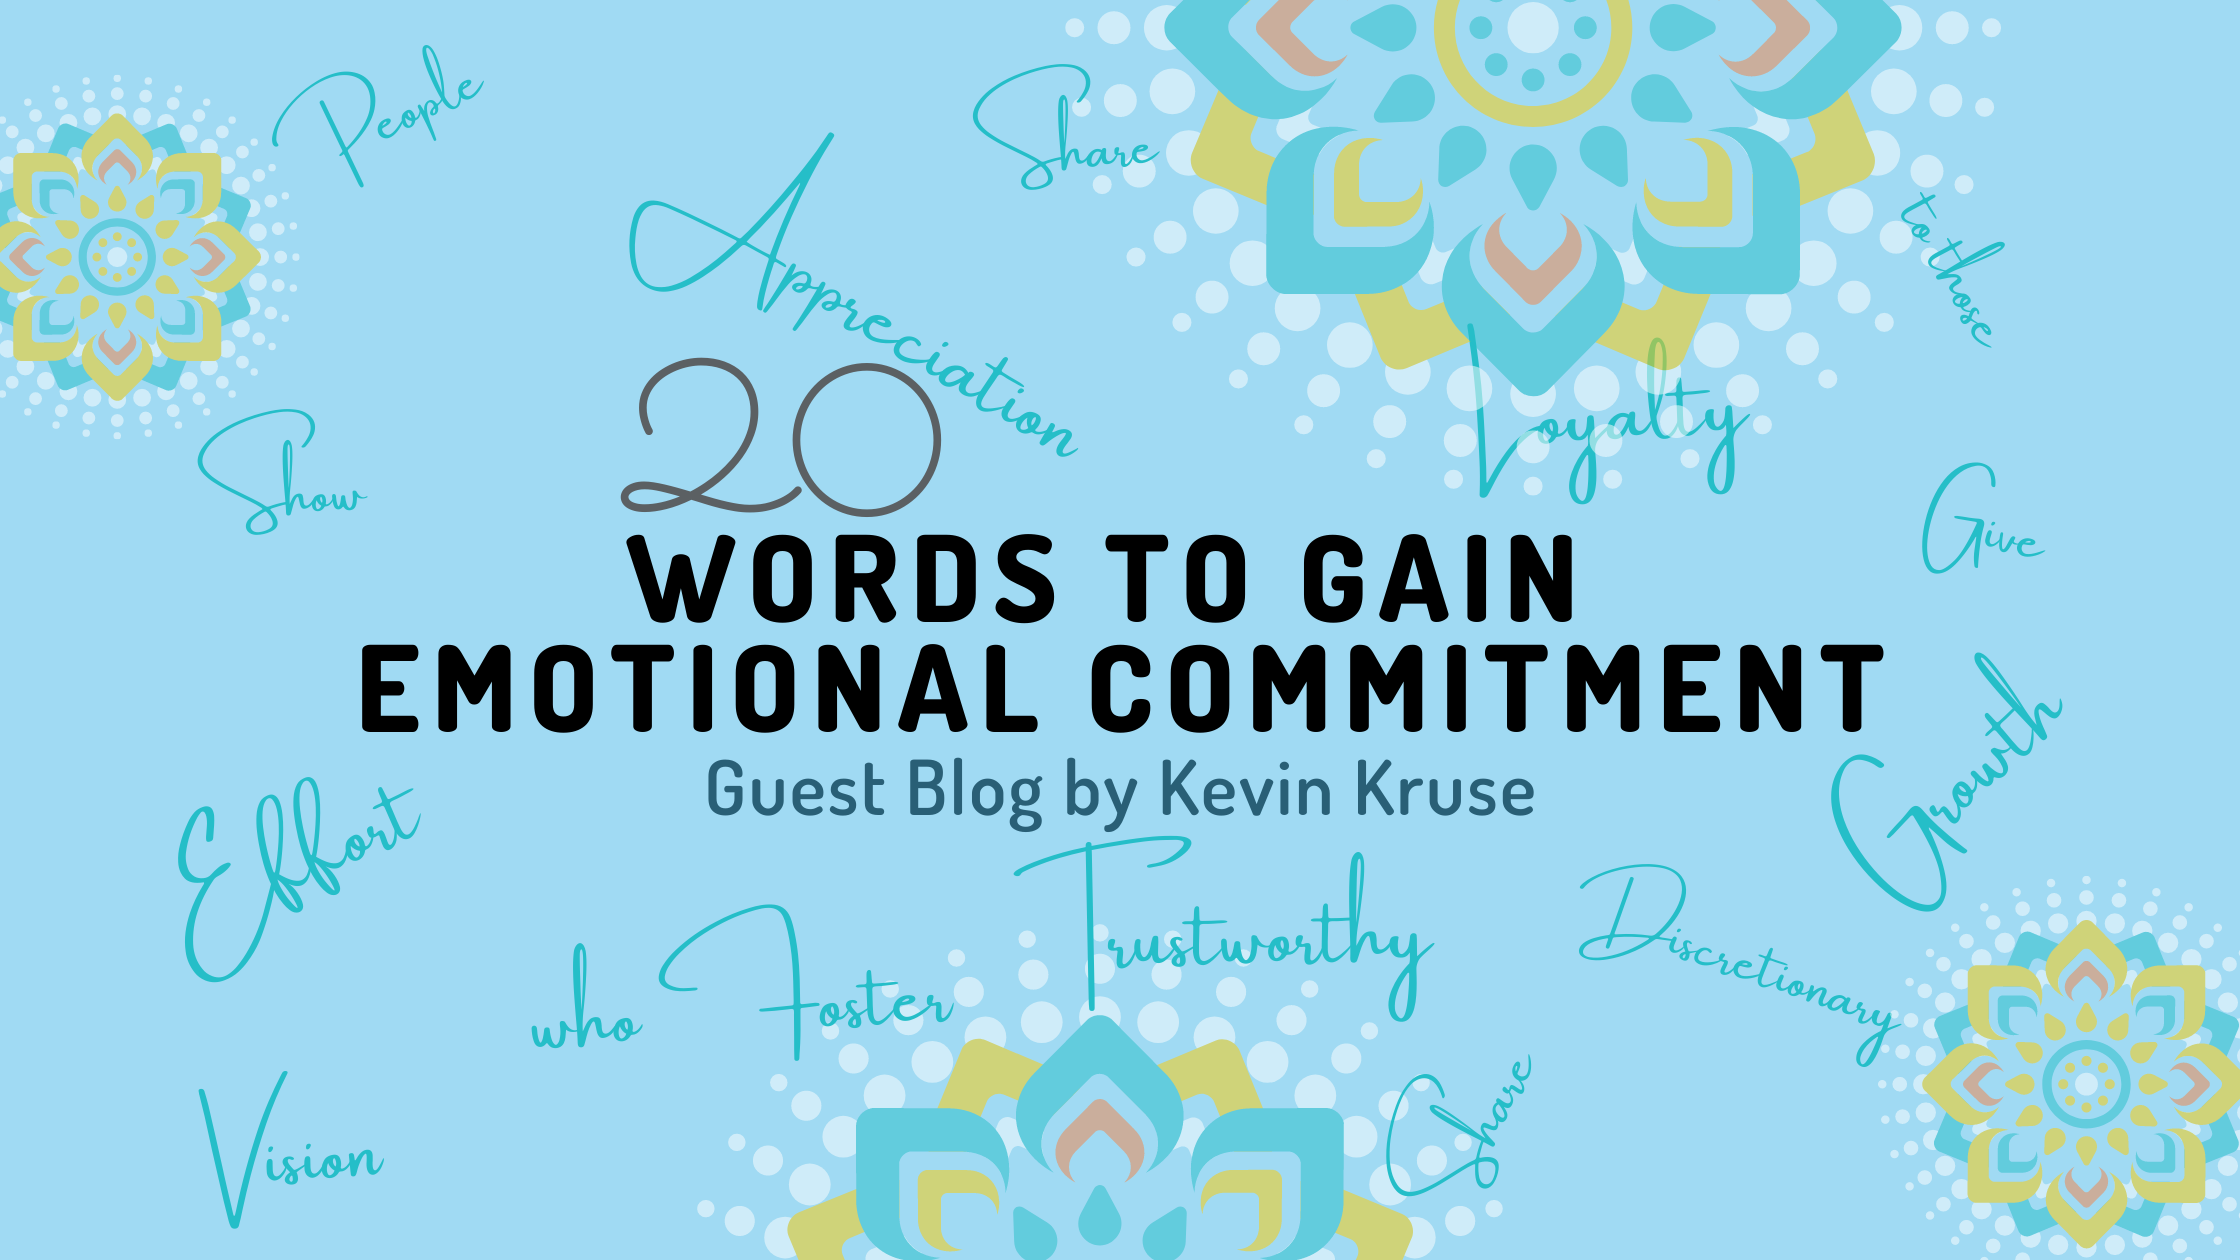 20 words to gain emotional commitment